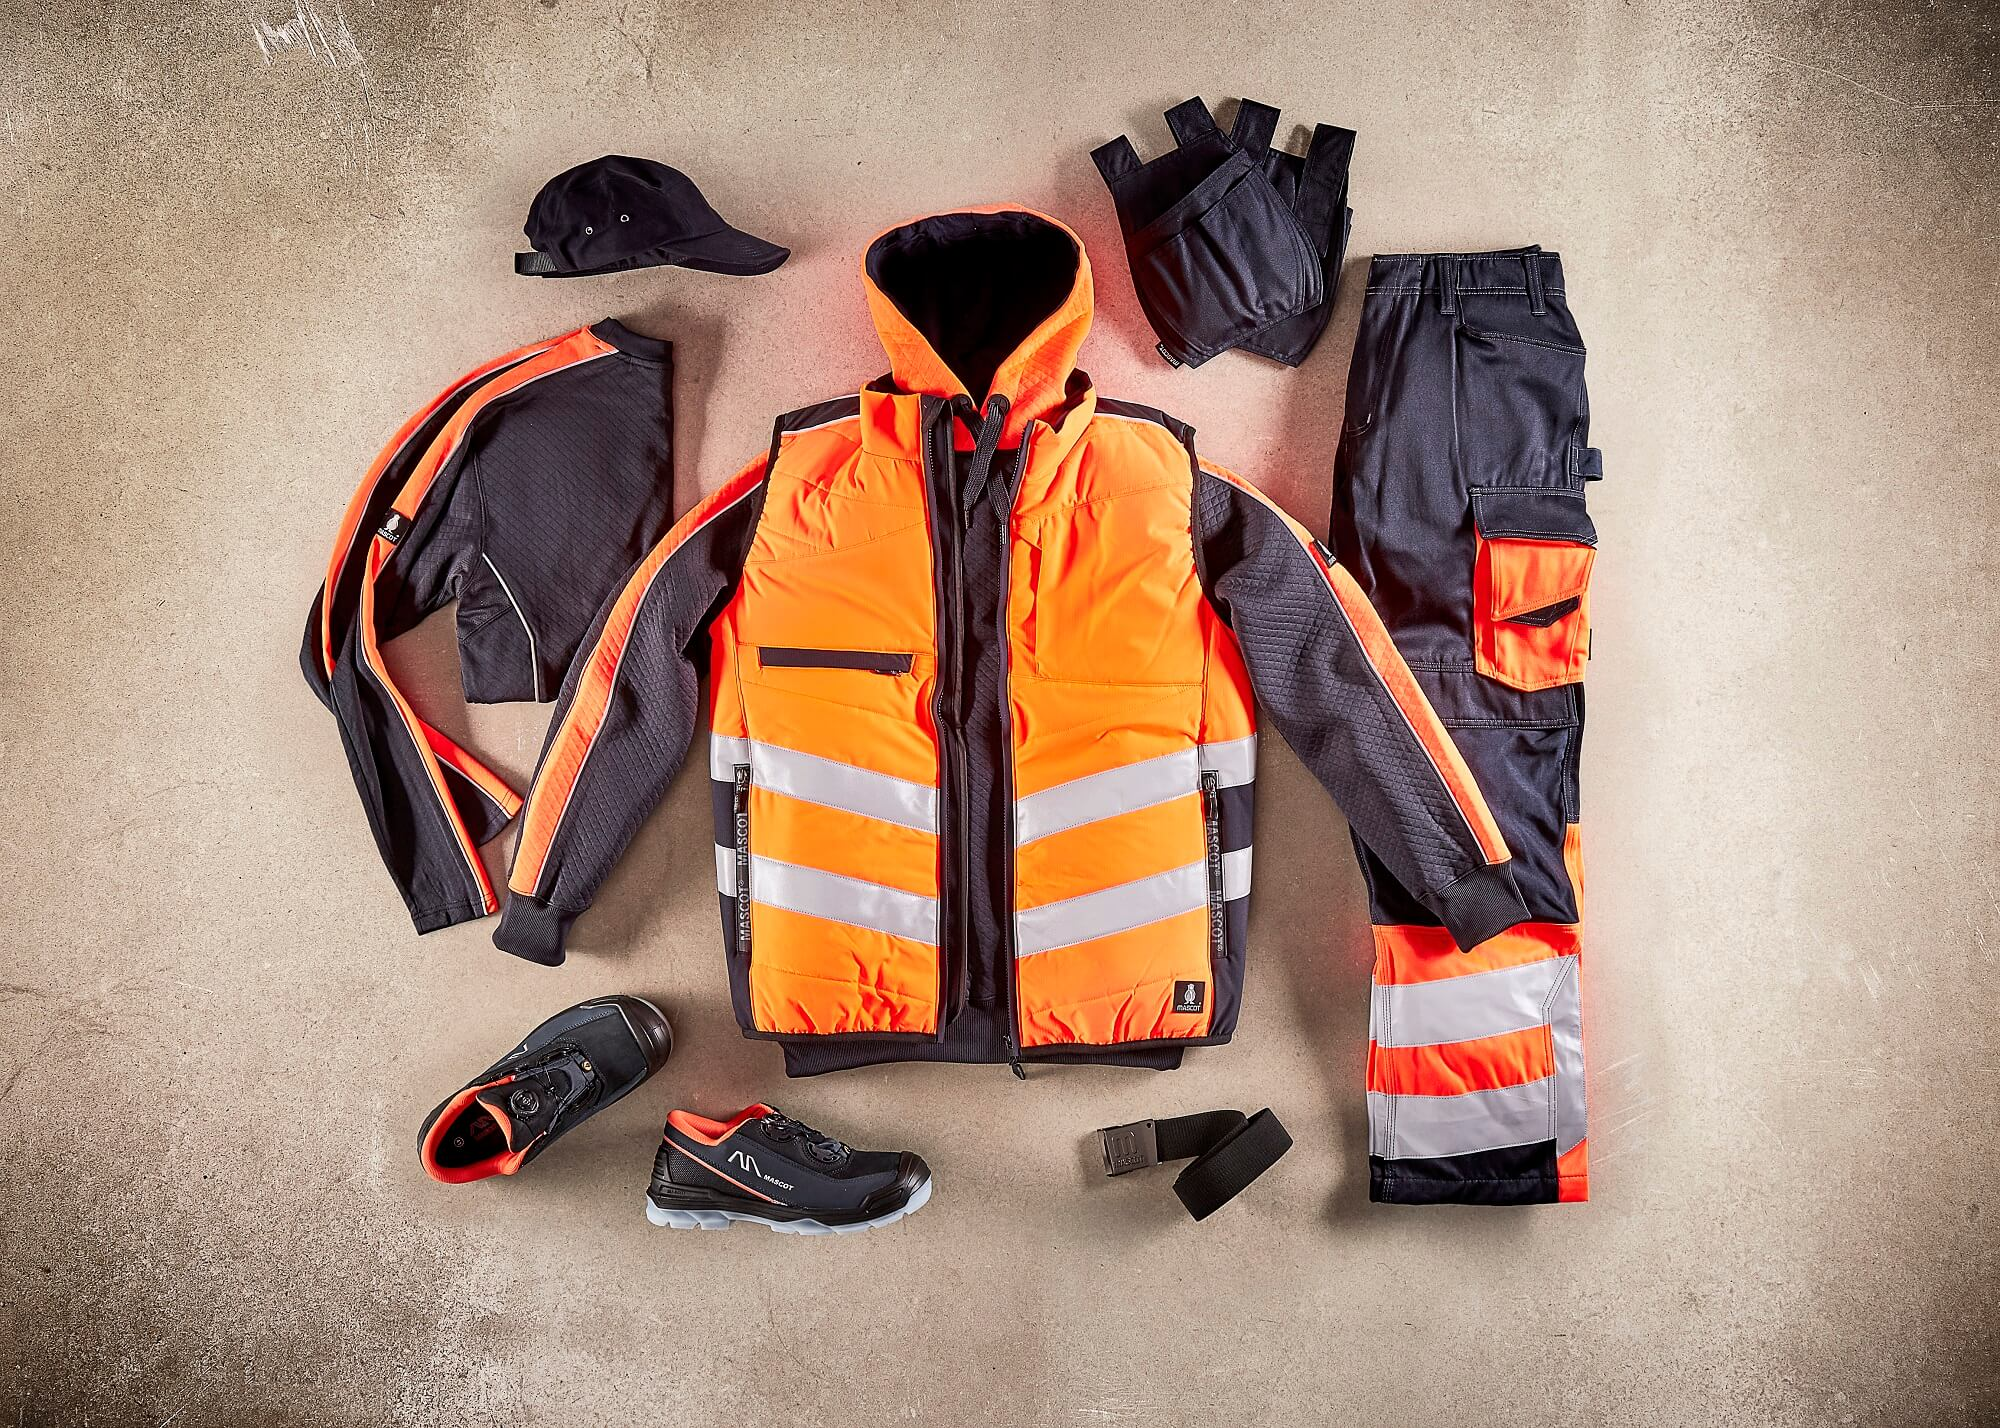 Safety clothing - Fluorescent orange - Collage